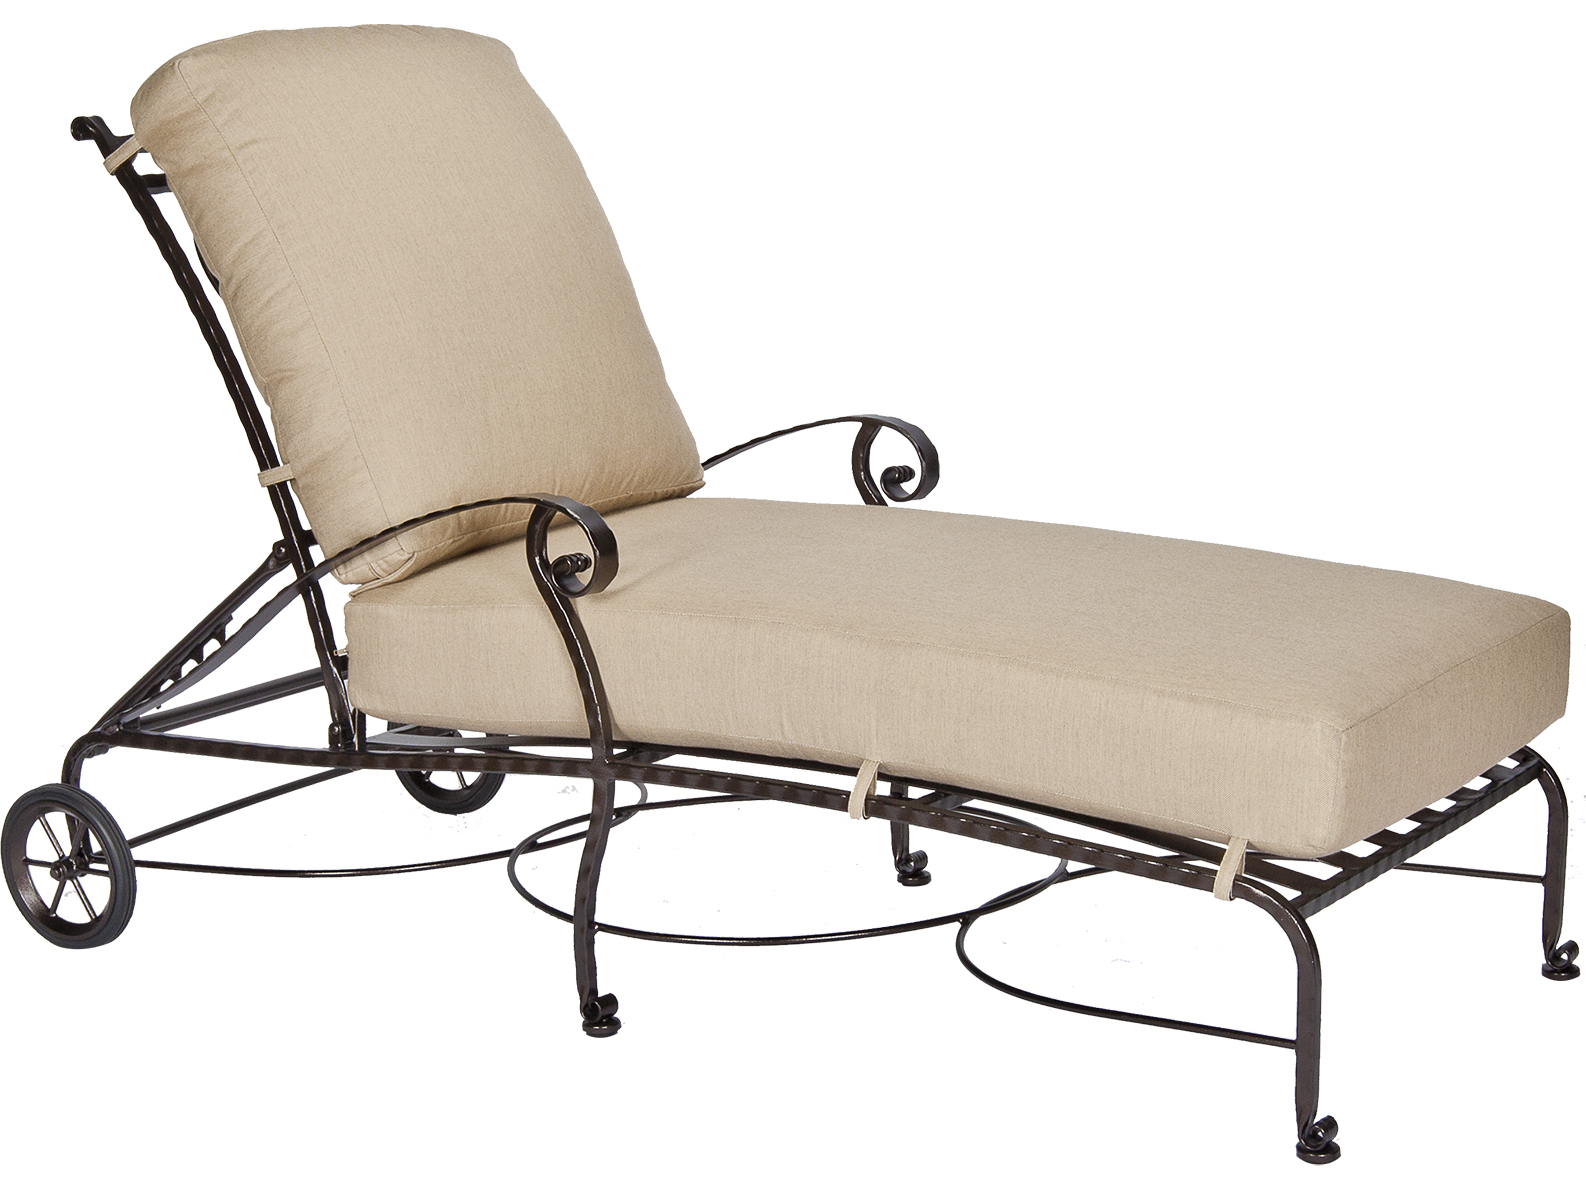 Ow lee san cristobal wrought iron adjustable chaise lounge for Black wrought iron chaise lounge